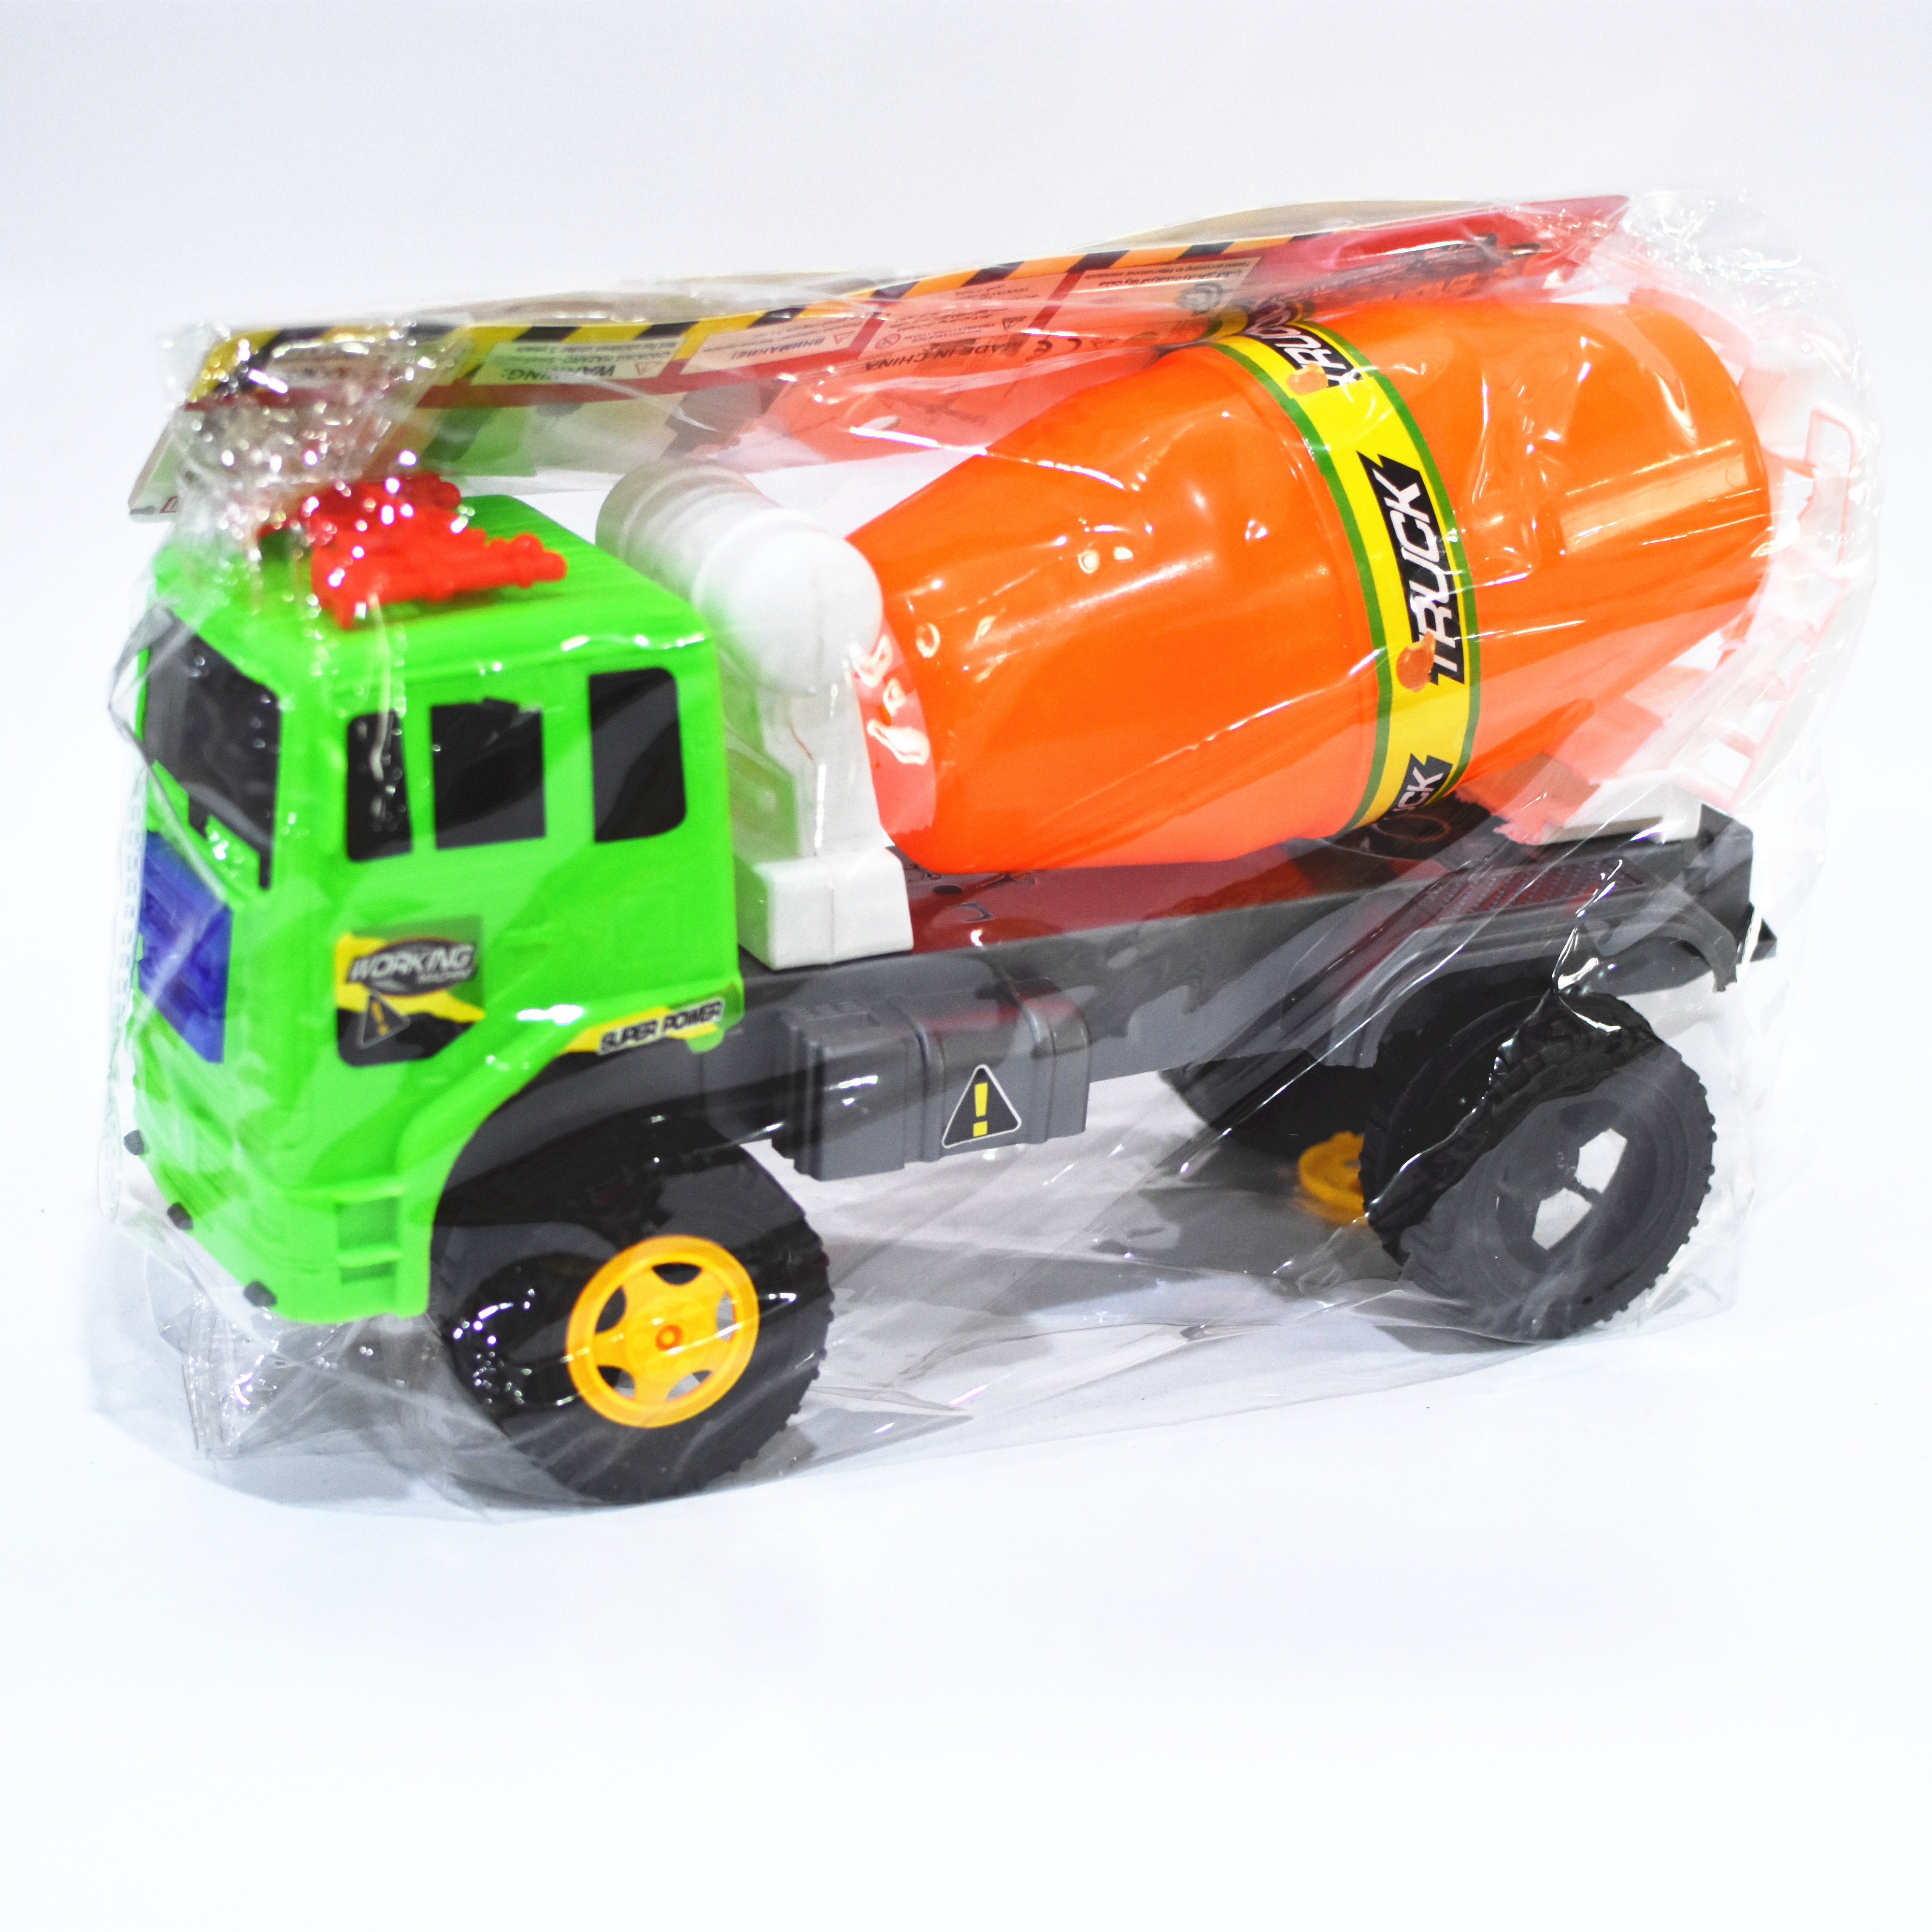 FREE WHEEL TRUCK TOY LY1822